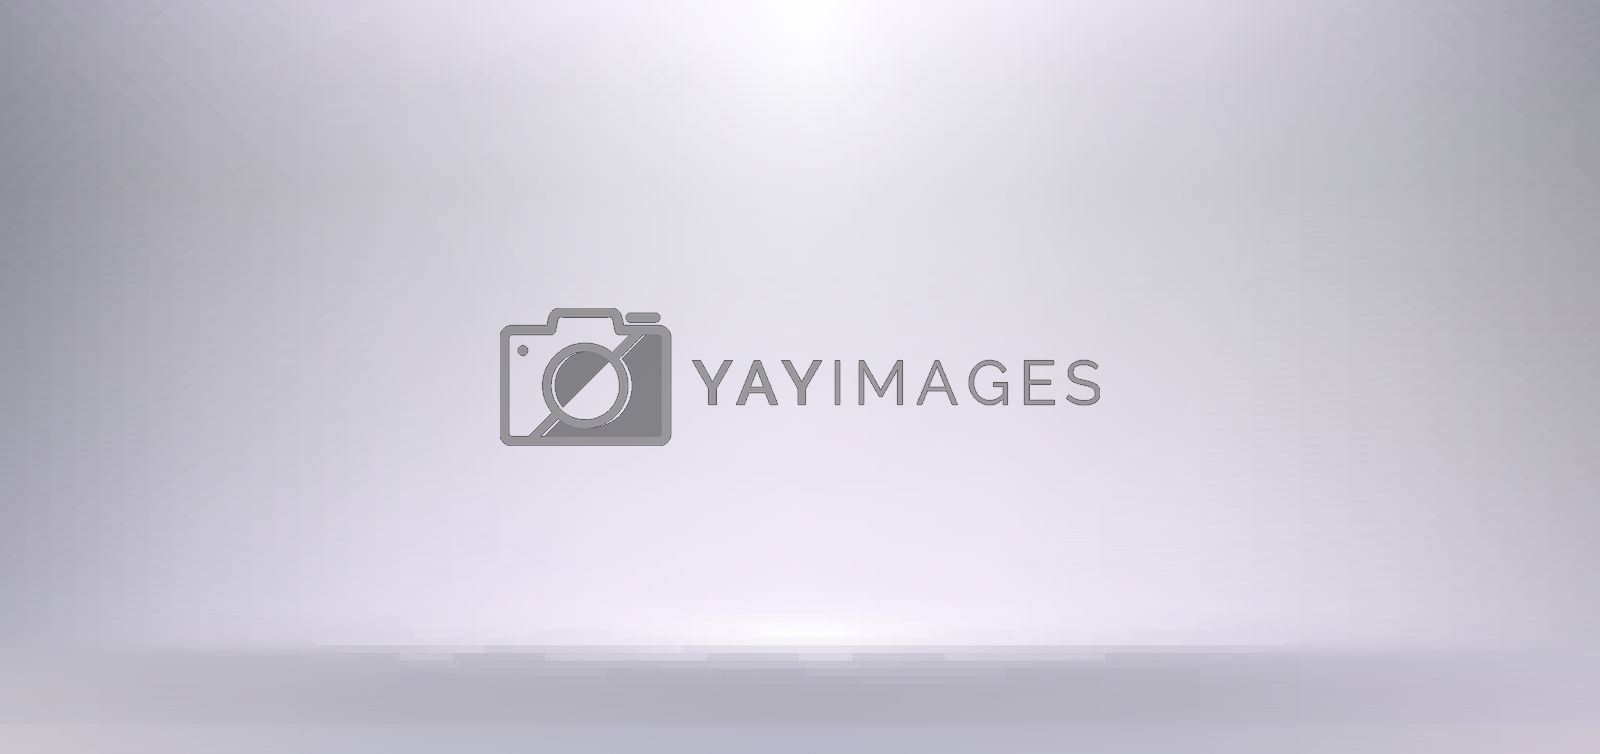 3D empty white and gray studio room background with spotlight on stage background. Display your product or artwork luxury style. Vector illustration